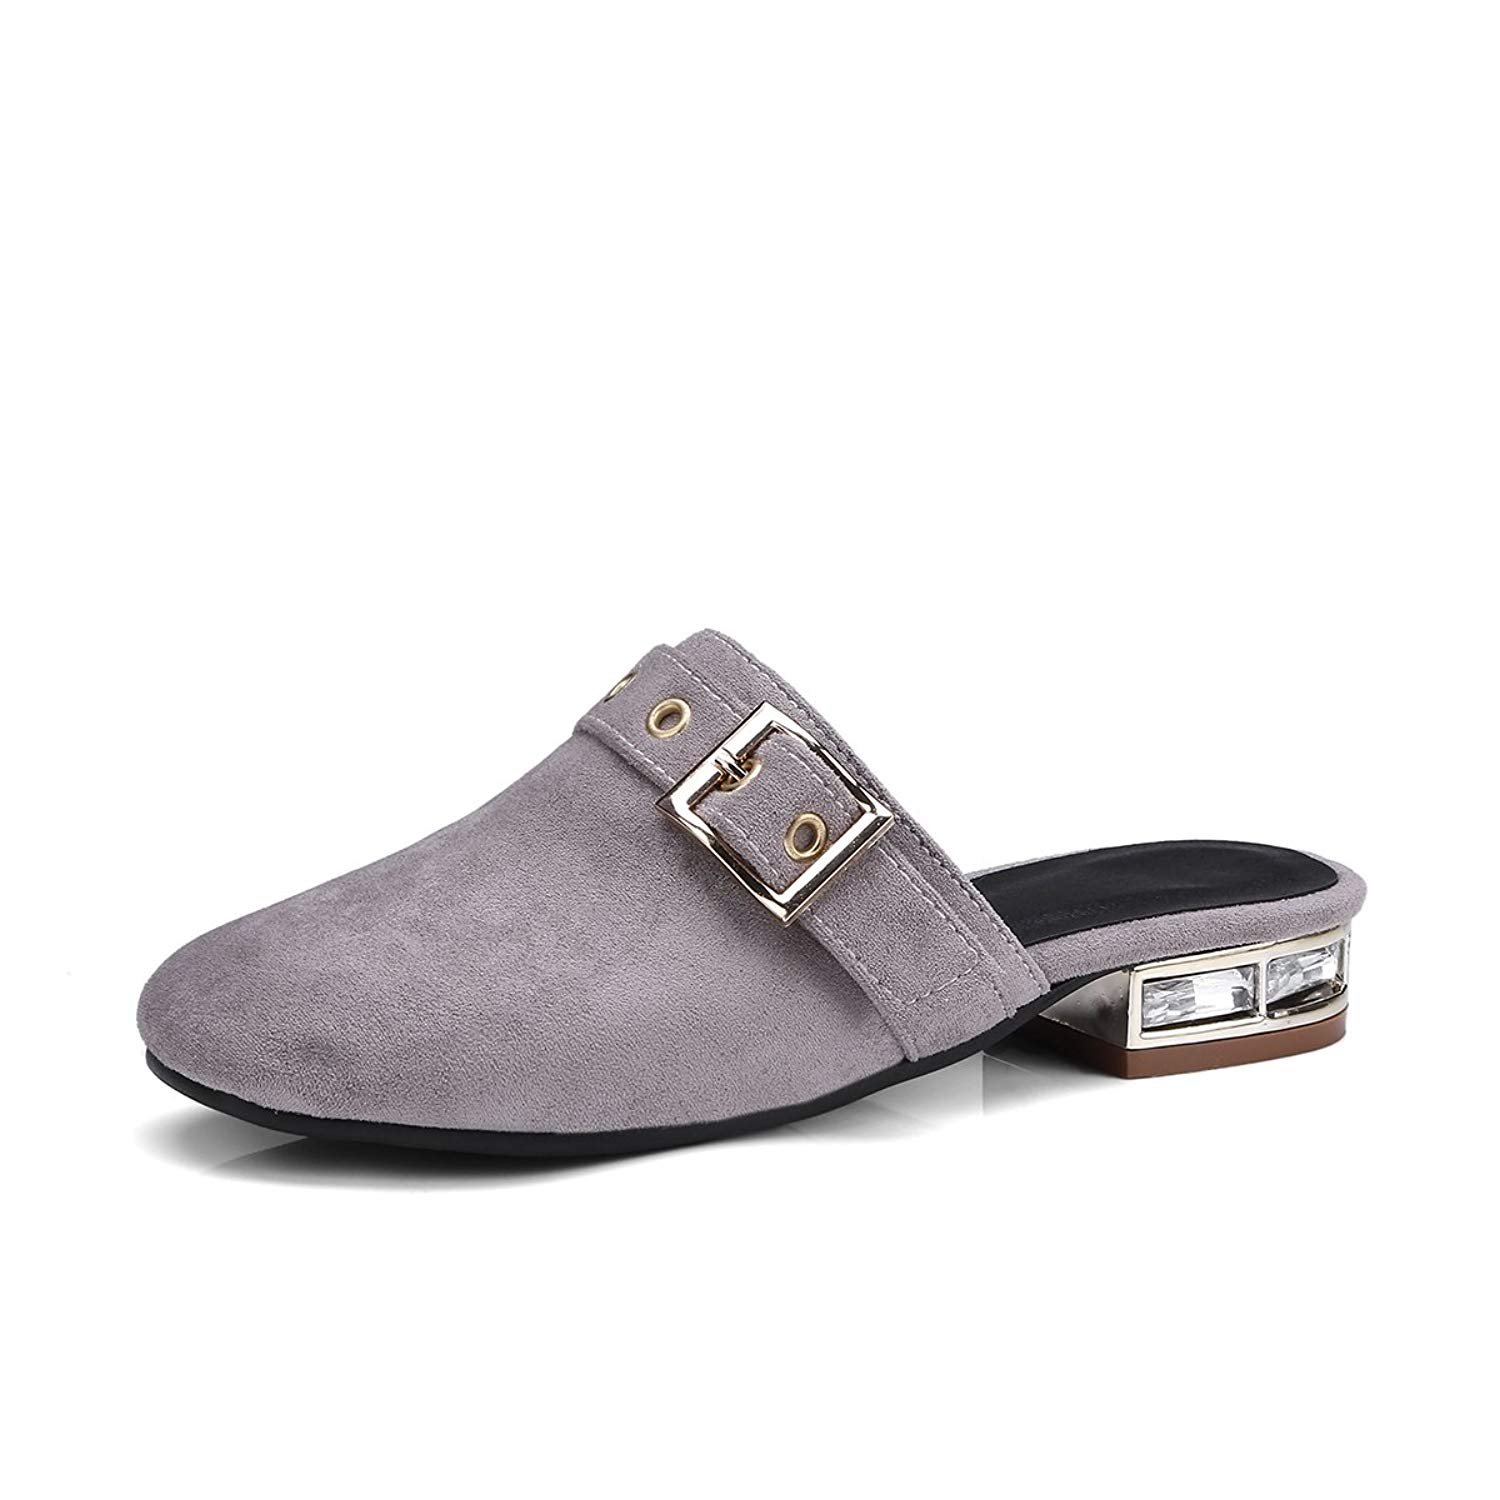 60ae1adfc5e Get Quotations · Eithy Mules Shoes for Women Loafers Shoes Round Toe Buckle  Backless Slip On Apricot Gray Pink